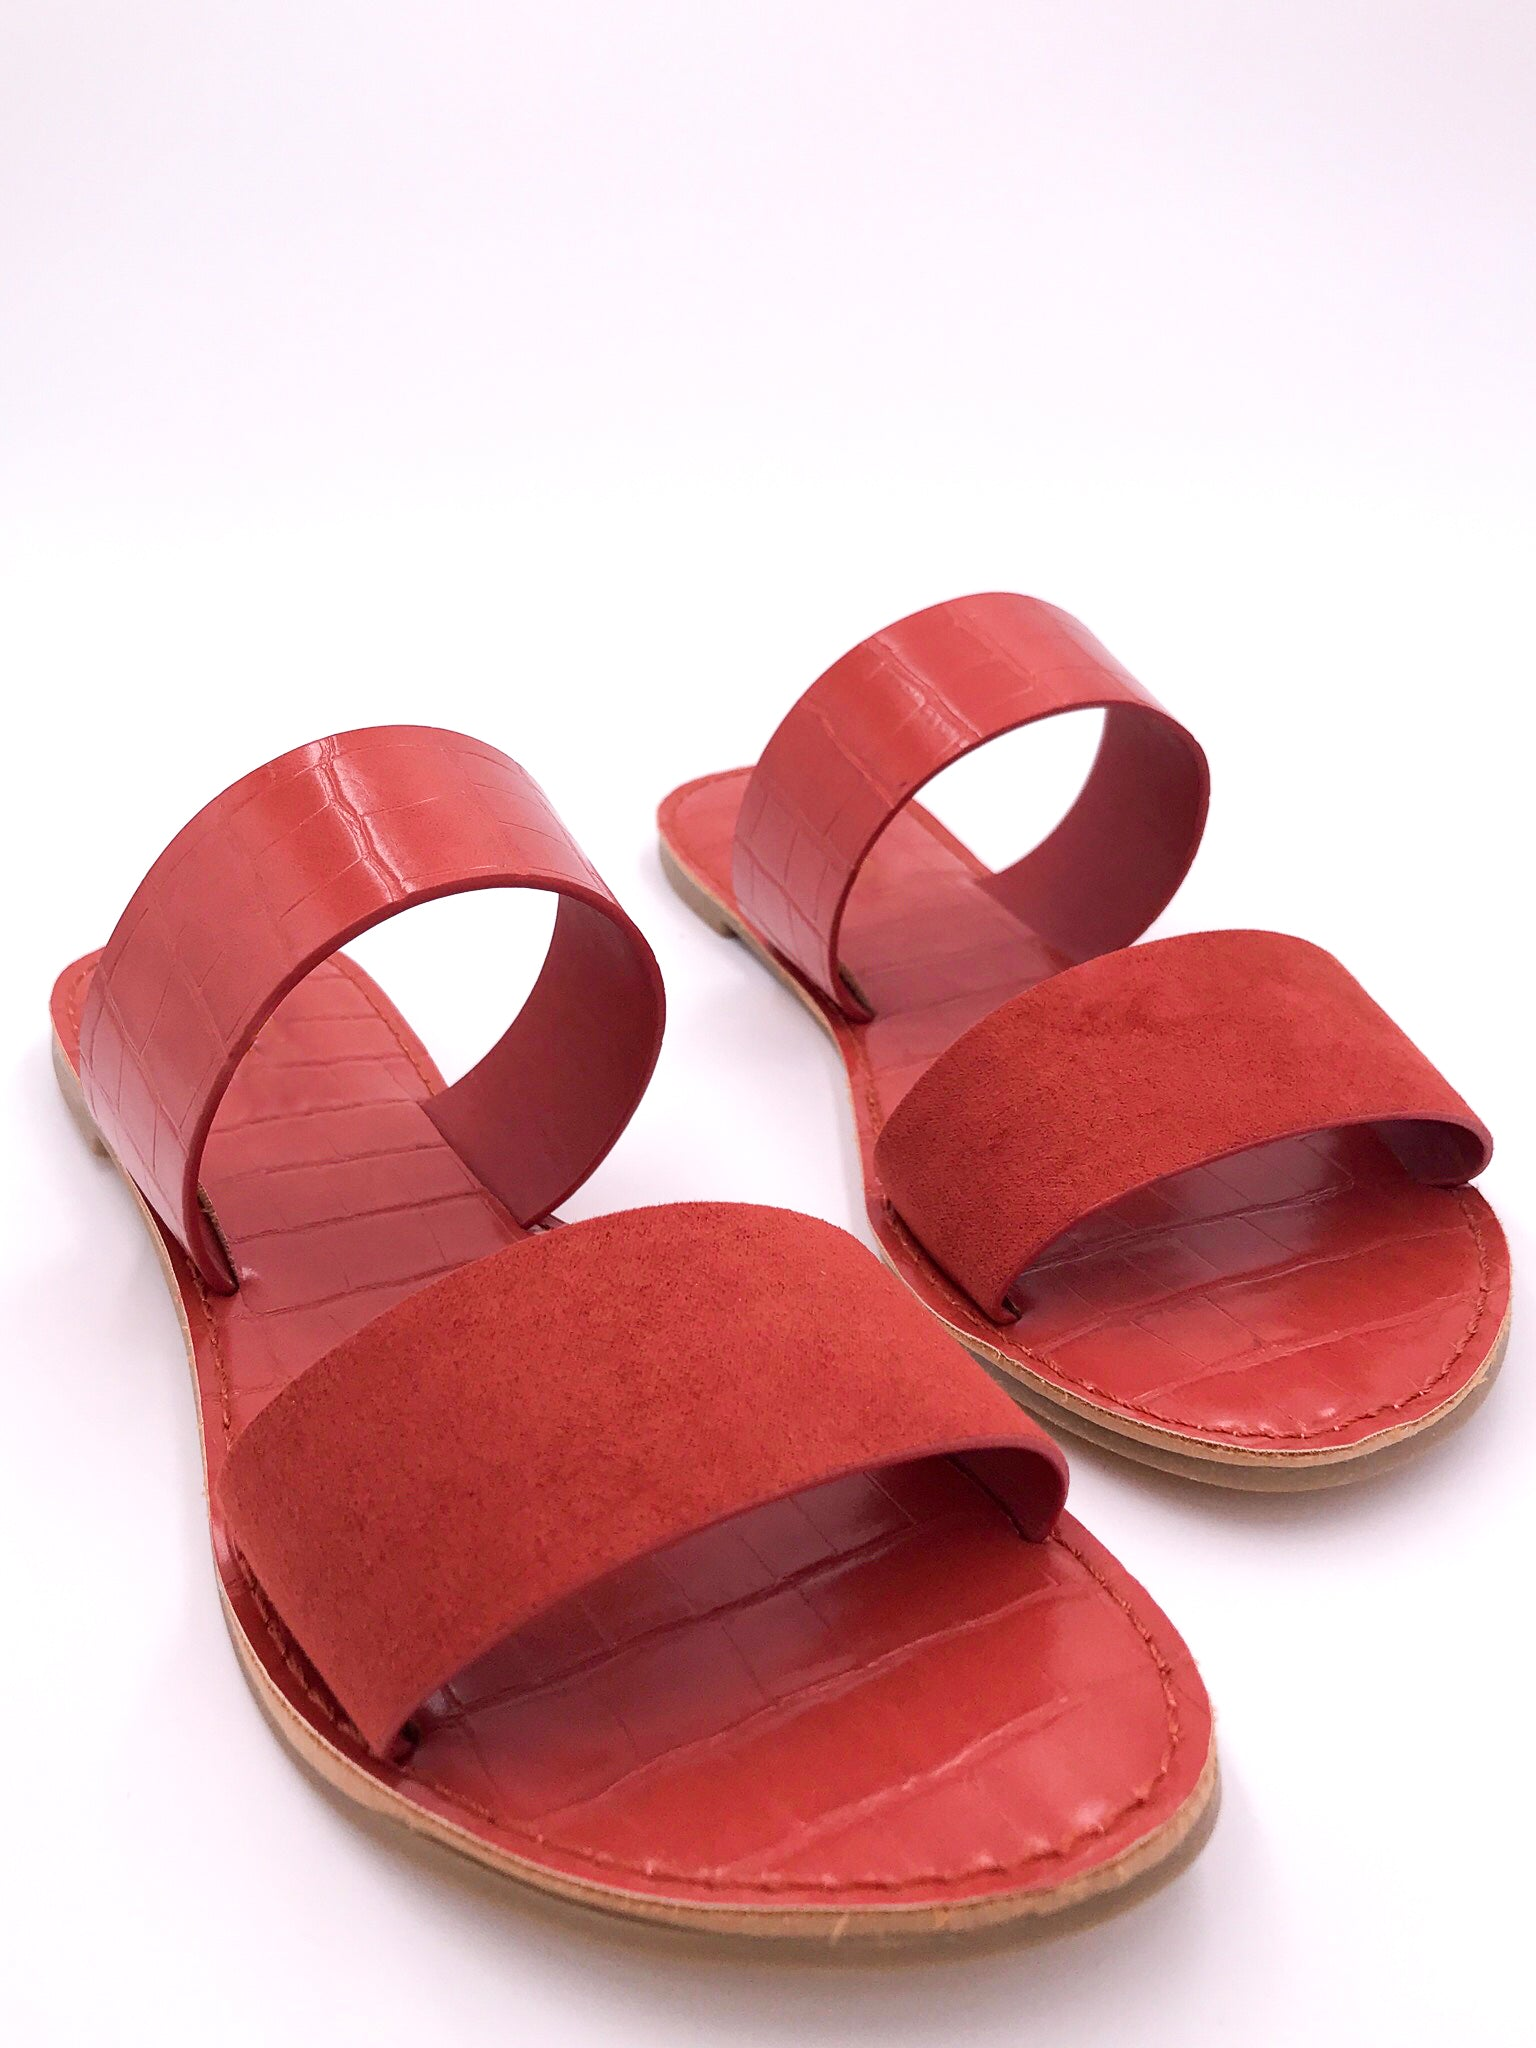 red slip on sandals , red suede, red leather